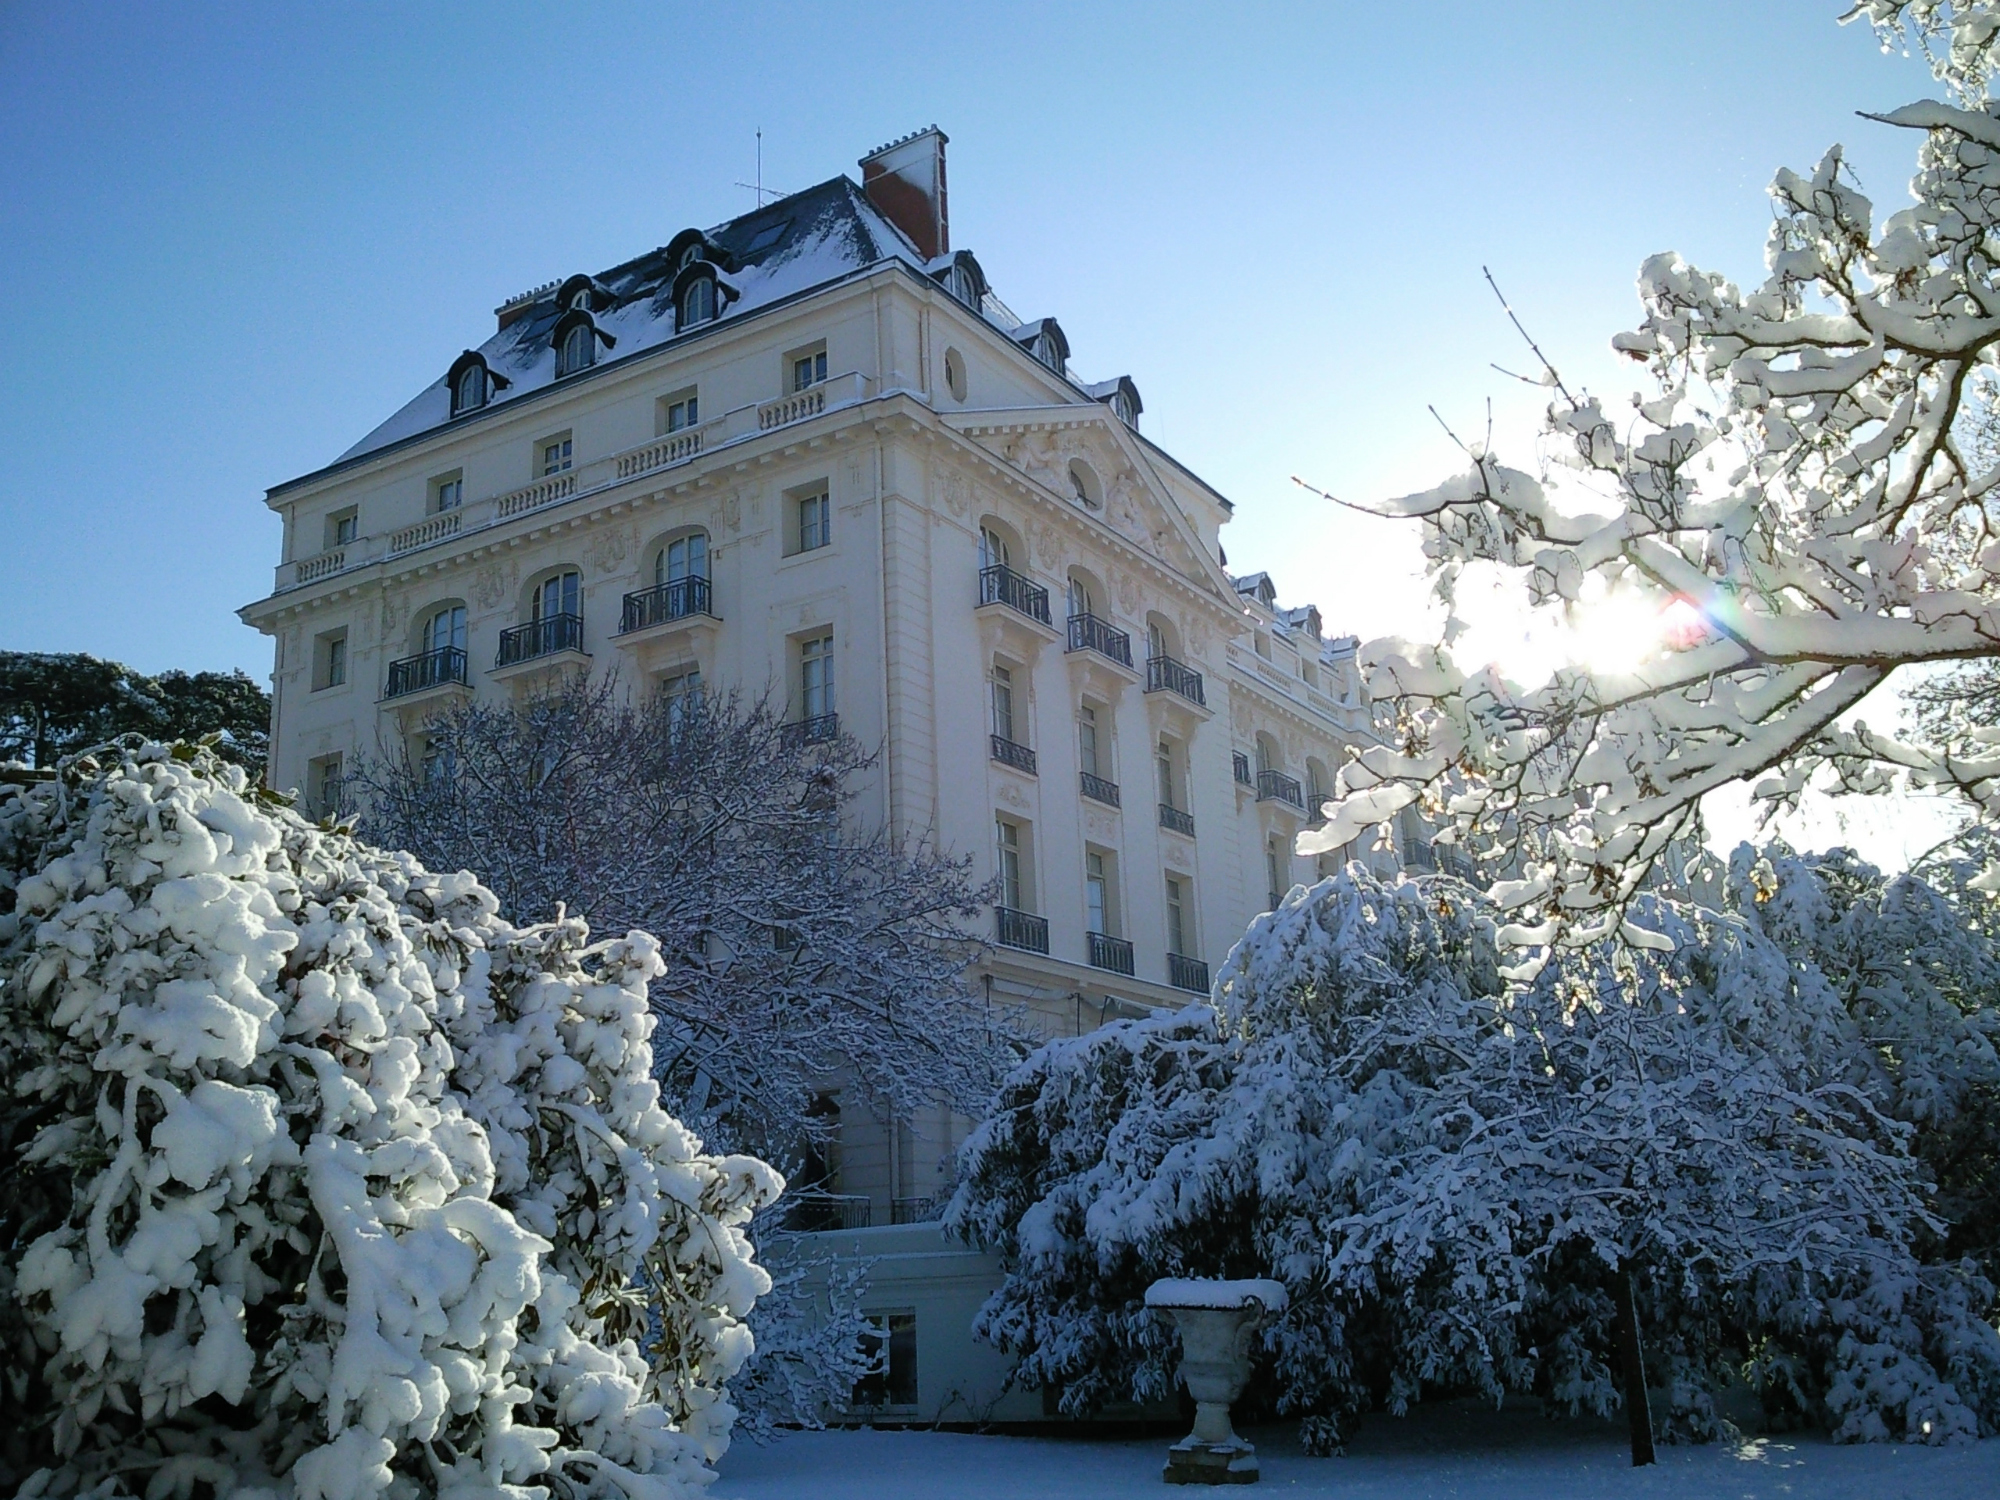 9 hotels that make the holidays extra special passport - Hotel trianon versailles ...